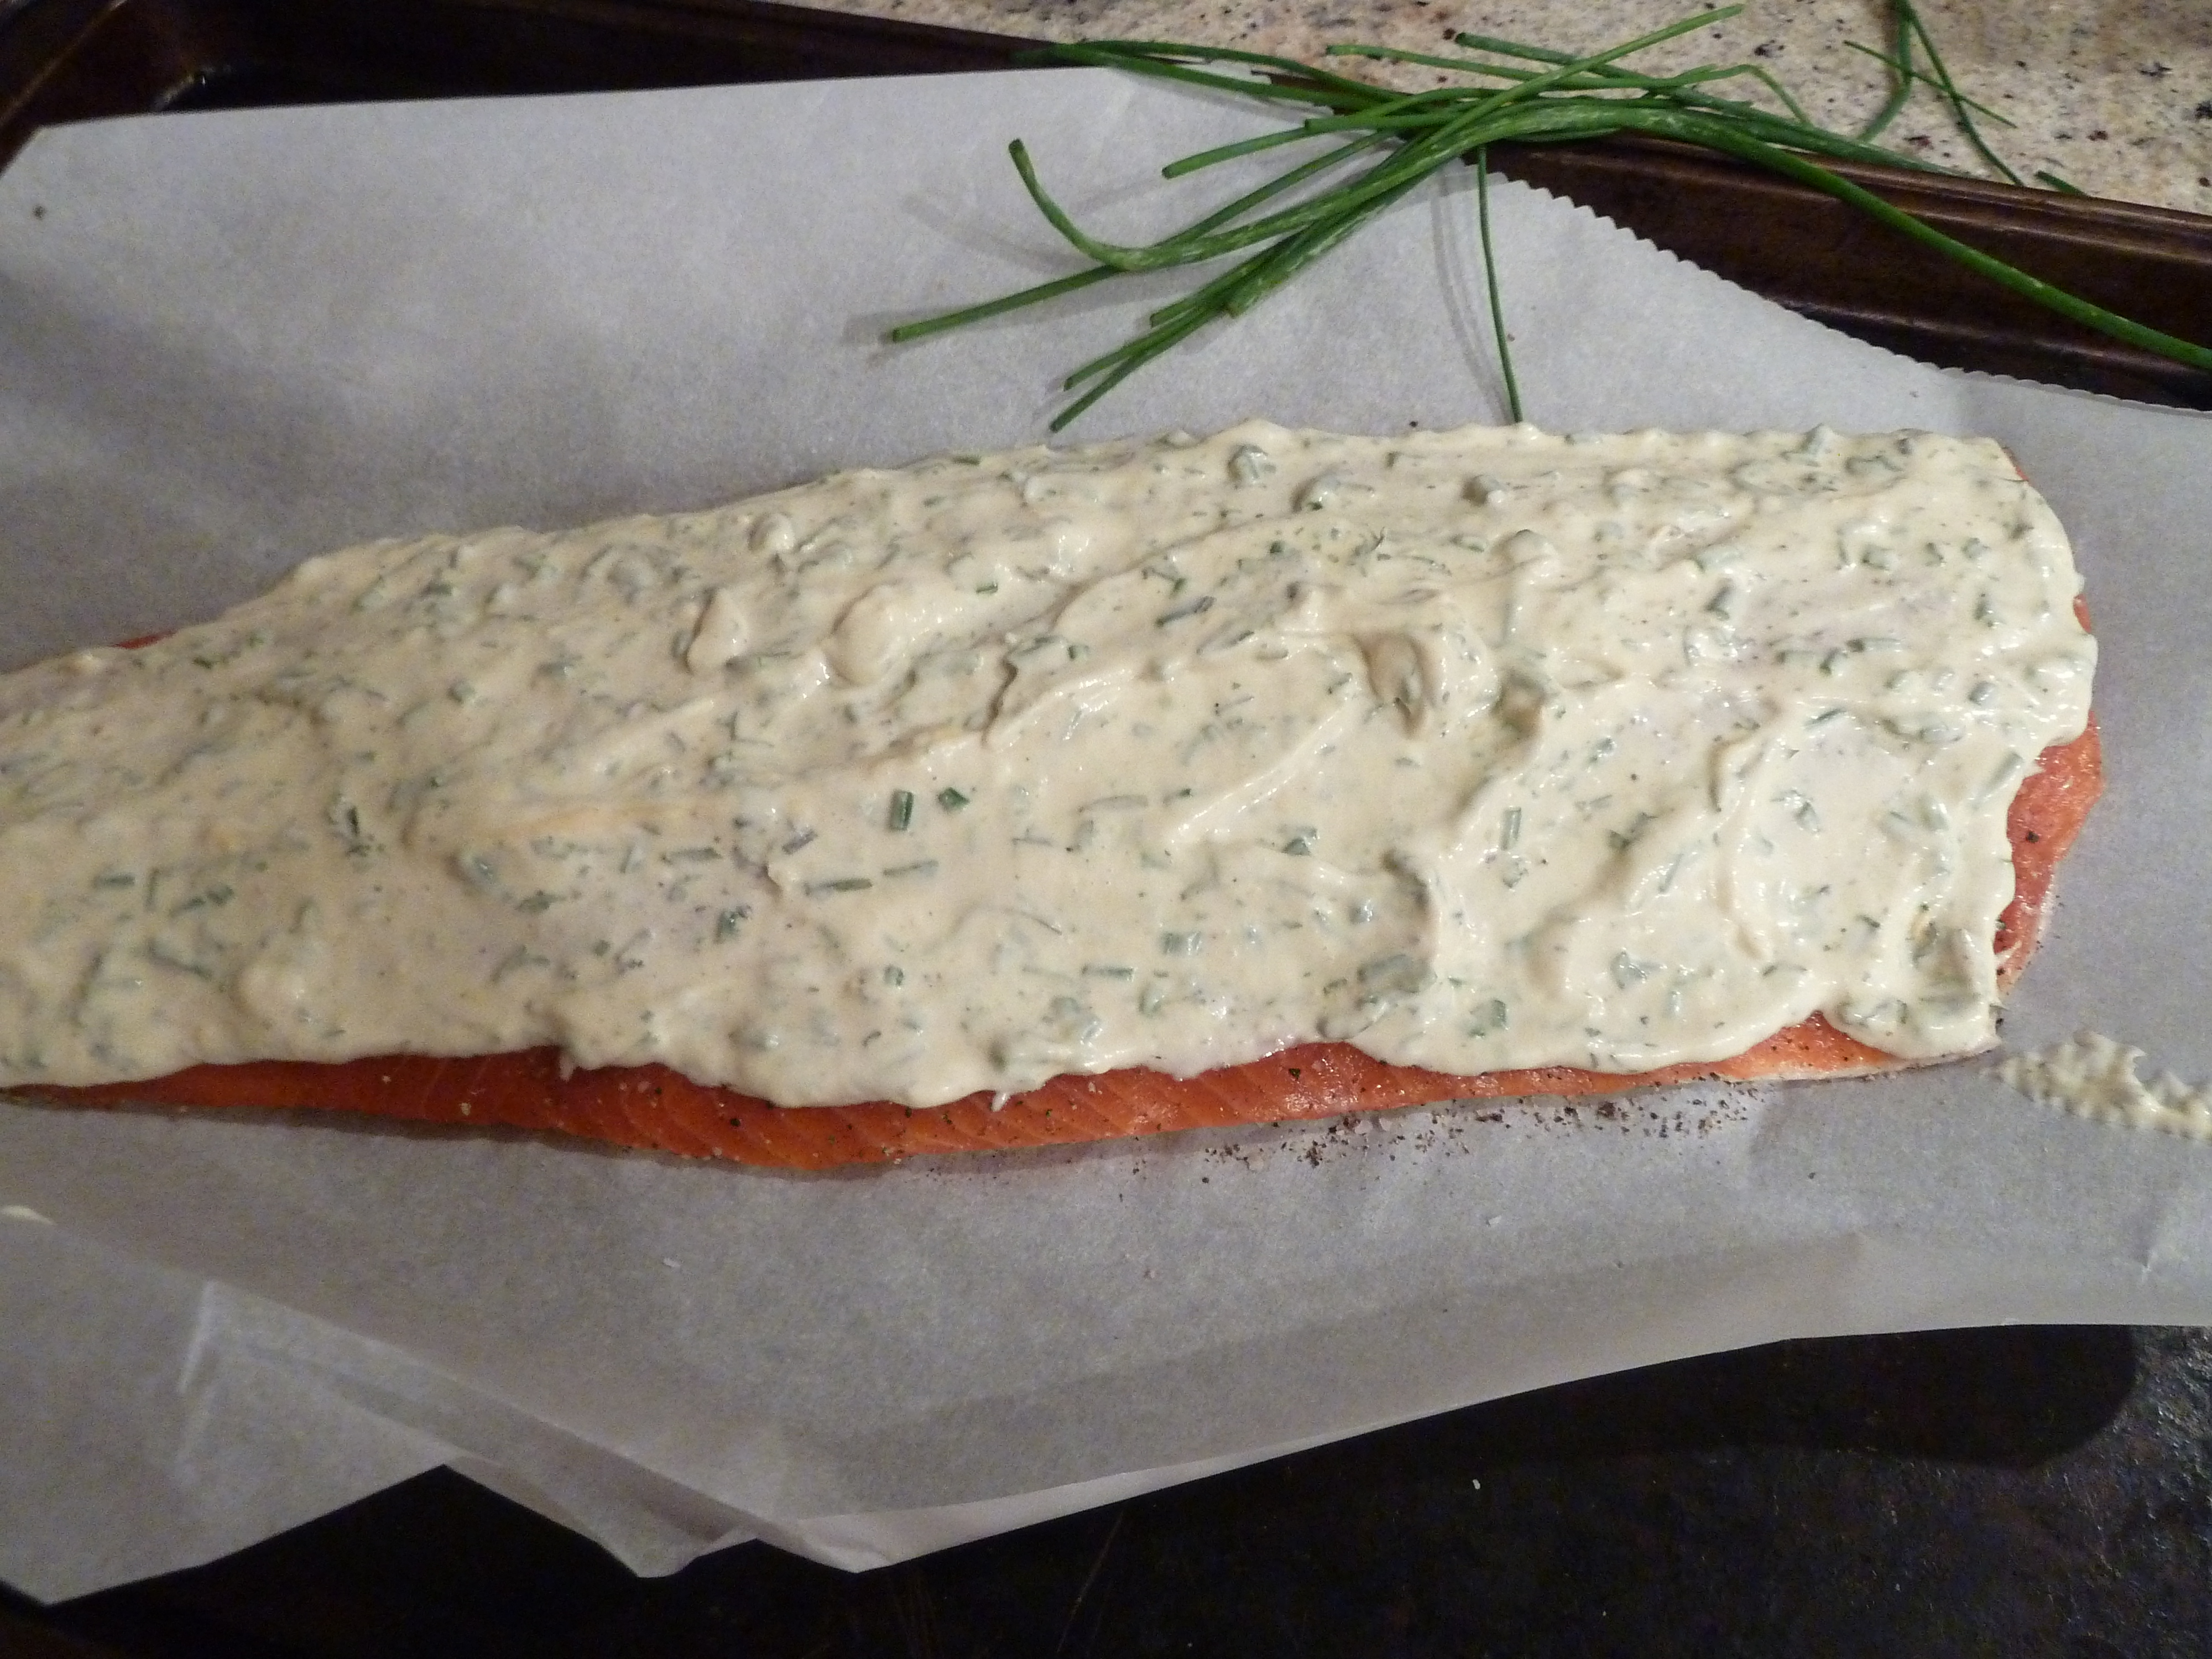 Barbecued Salmon In Foil With Tarragon, Chives & Vermouth ...